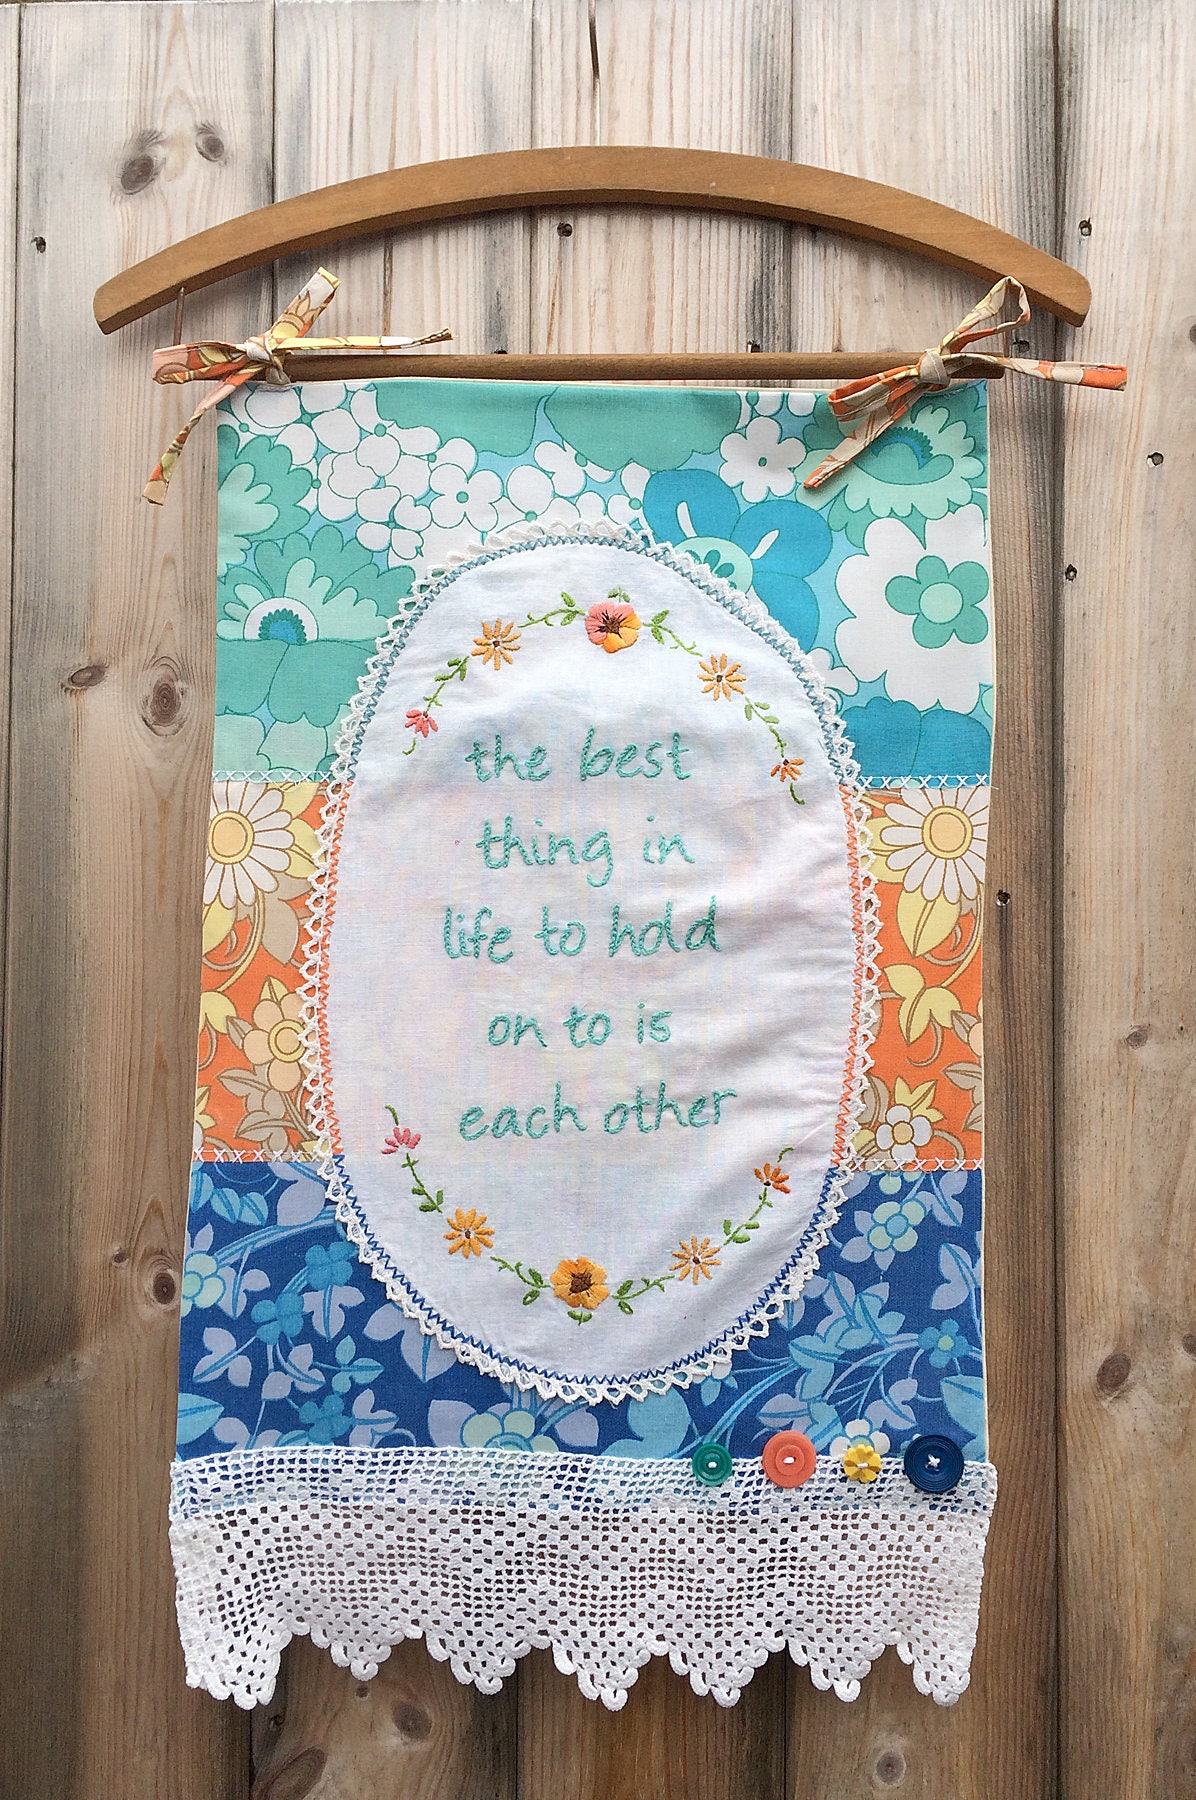 Embroidered Wall Hanging Banner  The Best Thing In Life To Hold On To Is Each Other  Vintage 70s Funky Bright Fabric  Doilies